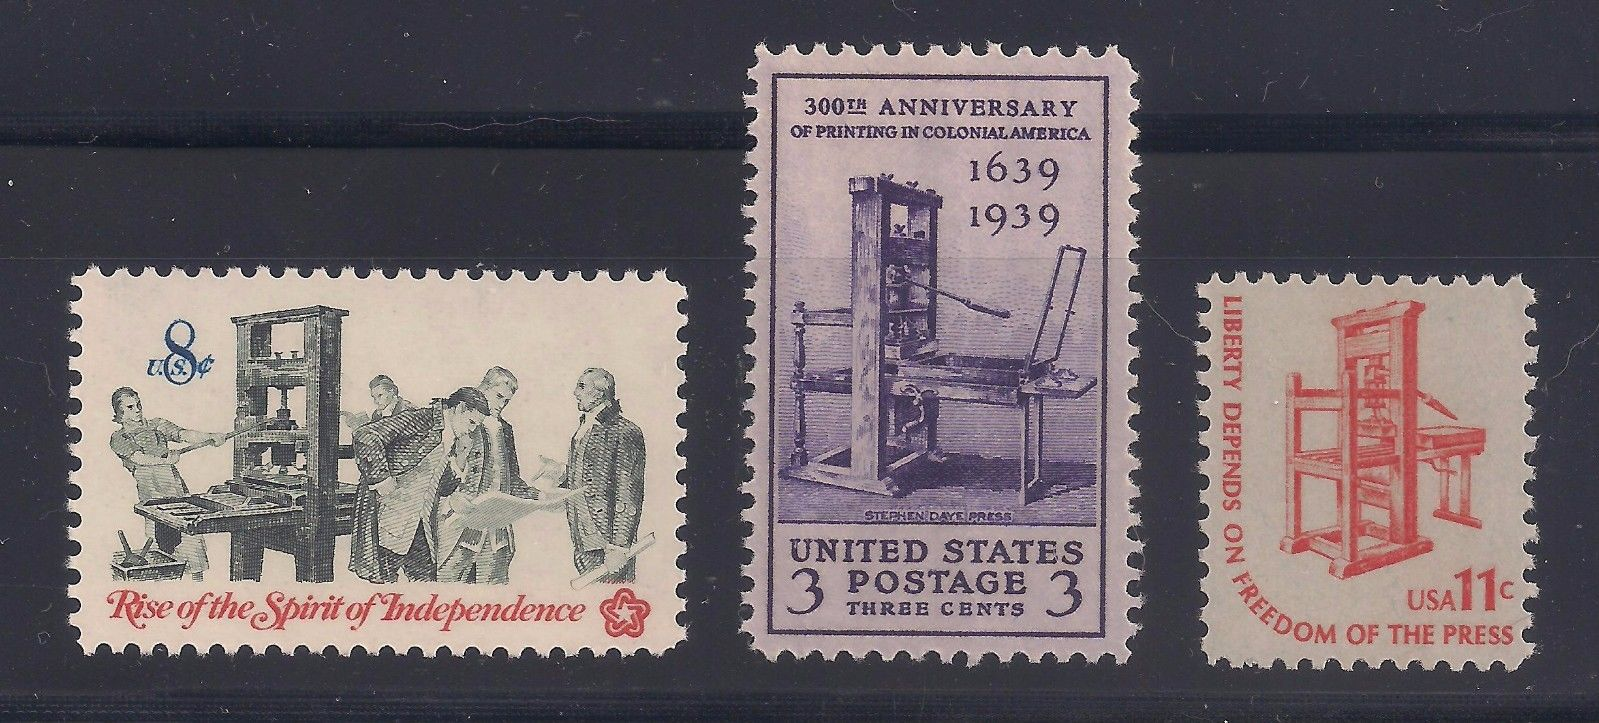 Postage Stamps showing Stephen Daye Press